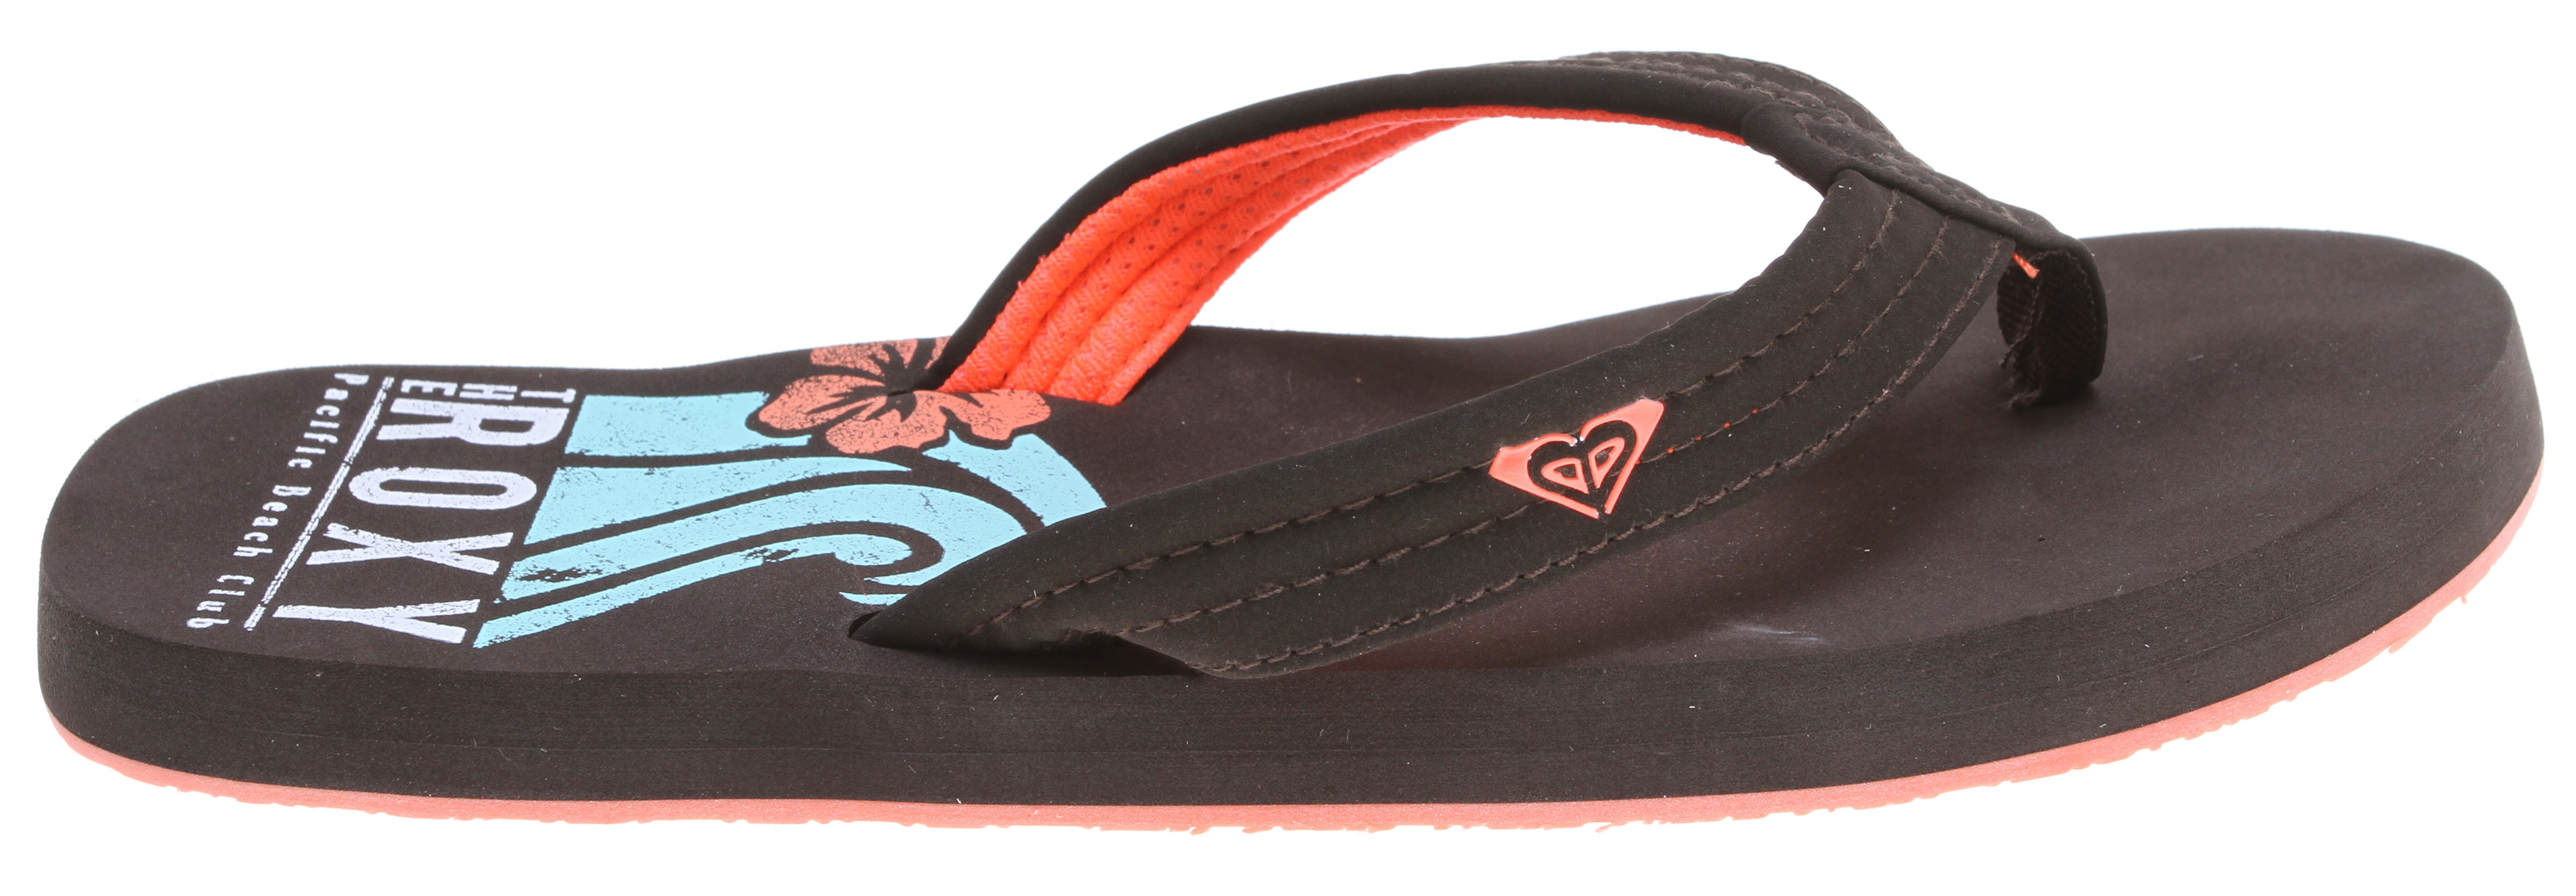 Surf Low tide, high tide, and everything in between! Our Low Tide Sandals are perfect for beach days and trips to the pool! Designed from water-friendly synthetic nubuck, we added a soft poly-web lining and an 'active foam' footbed and arch support. Sweet and sporty, just how we love our cool flip flops! Key Features of the Roxy Low Tide Sandals:  Soft gel printing  Rubber outsole  Imported. - $17.95